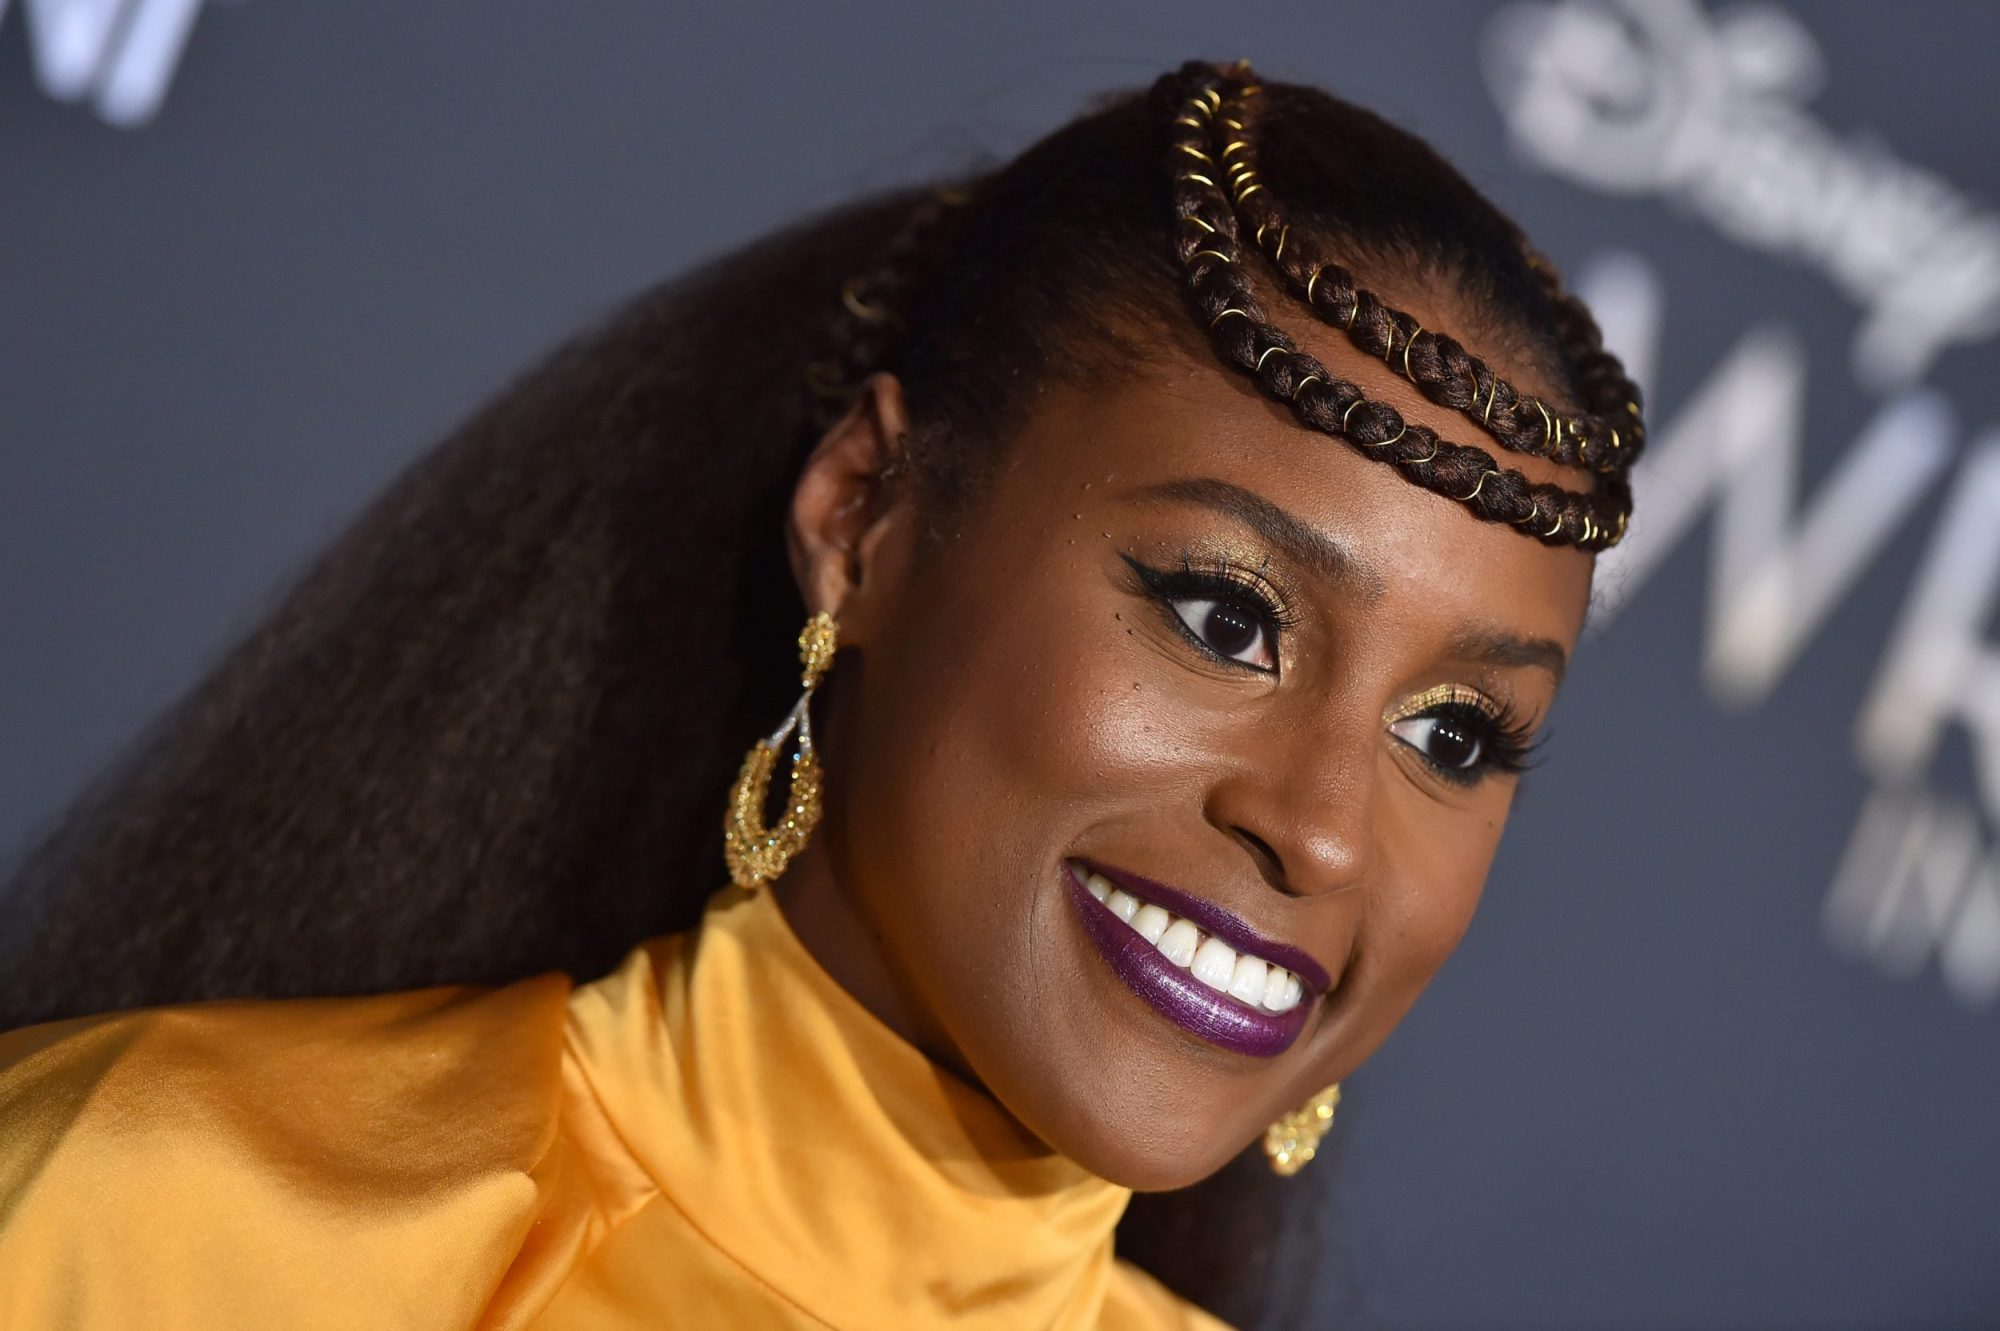 Photo of Issa Rae in Drake's Nice For What Video